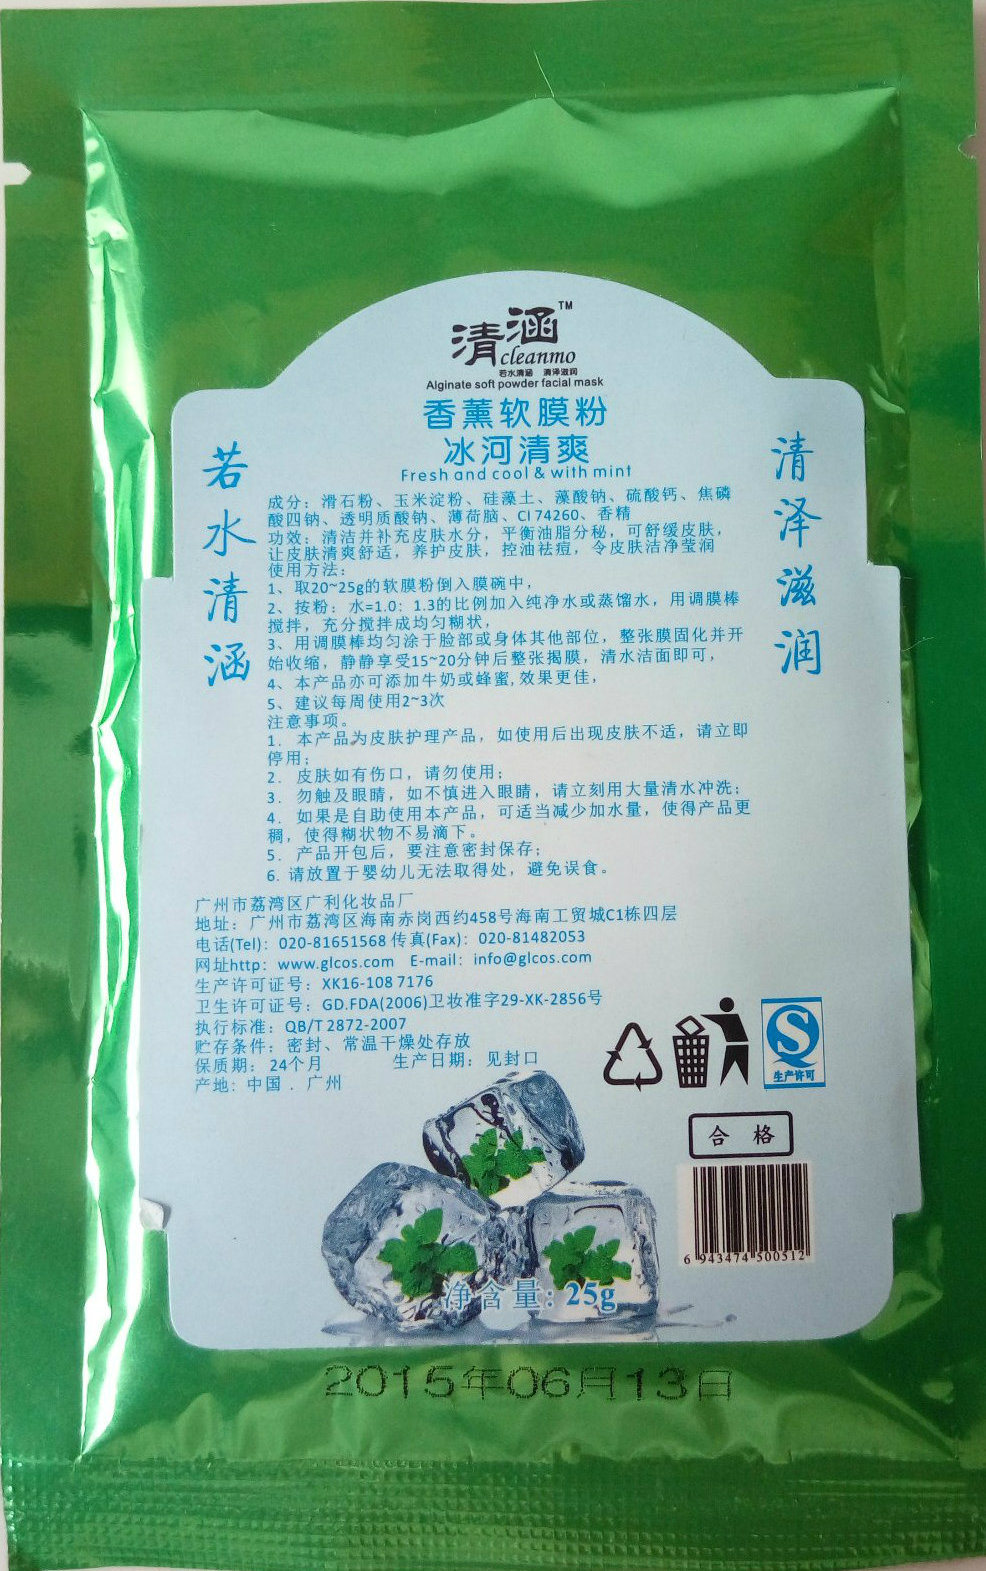 Fragrance Soft Powder Facial Mask Cleanse and Soothing Skin